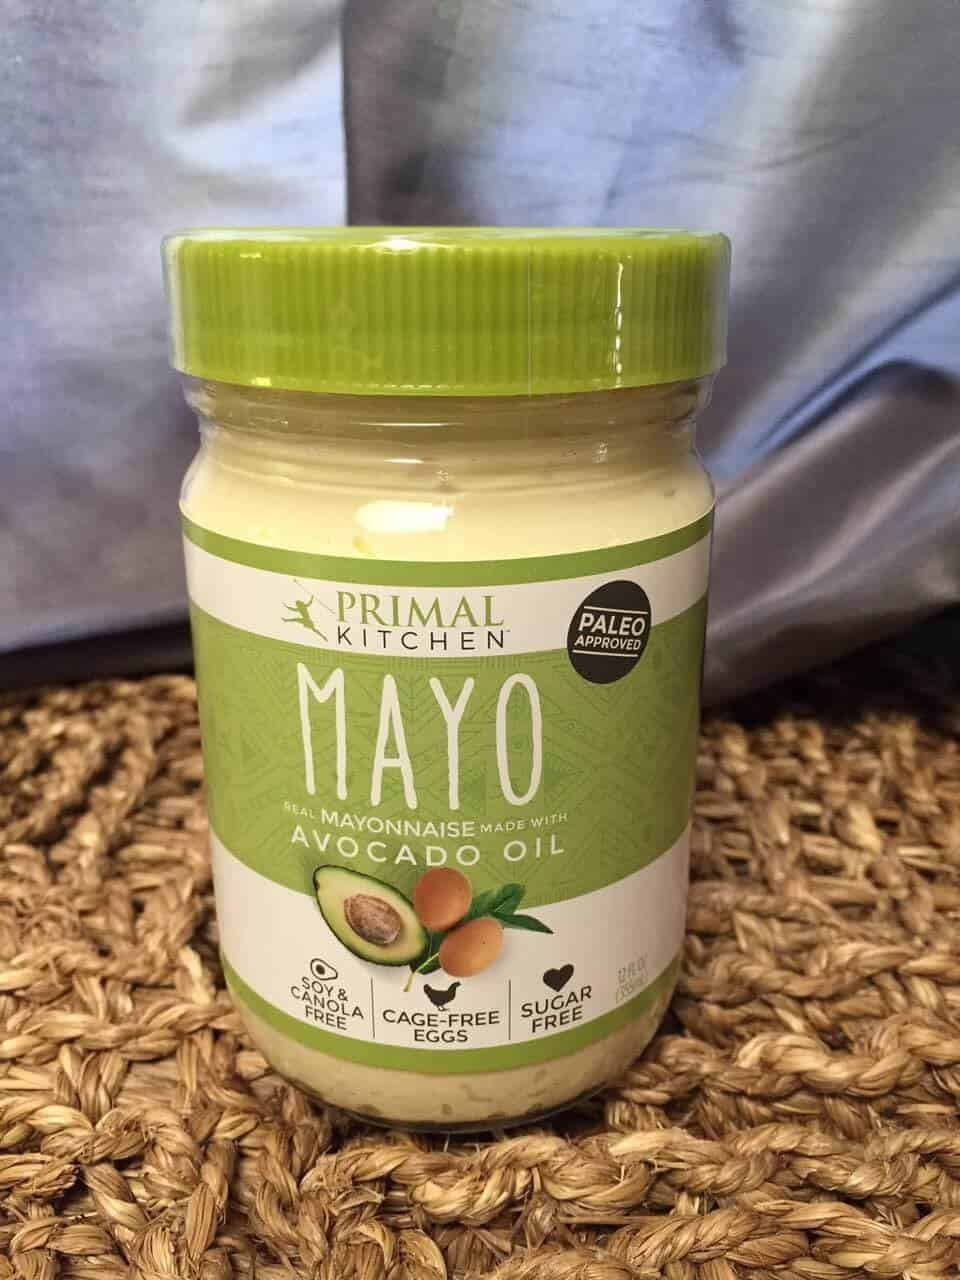 Primal Kitchen Mayo from Thrive Market